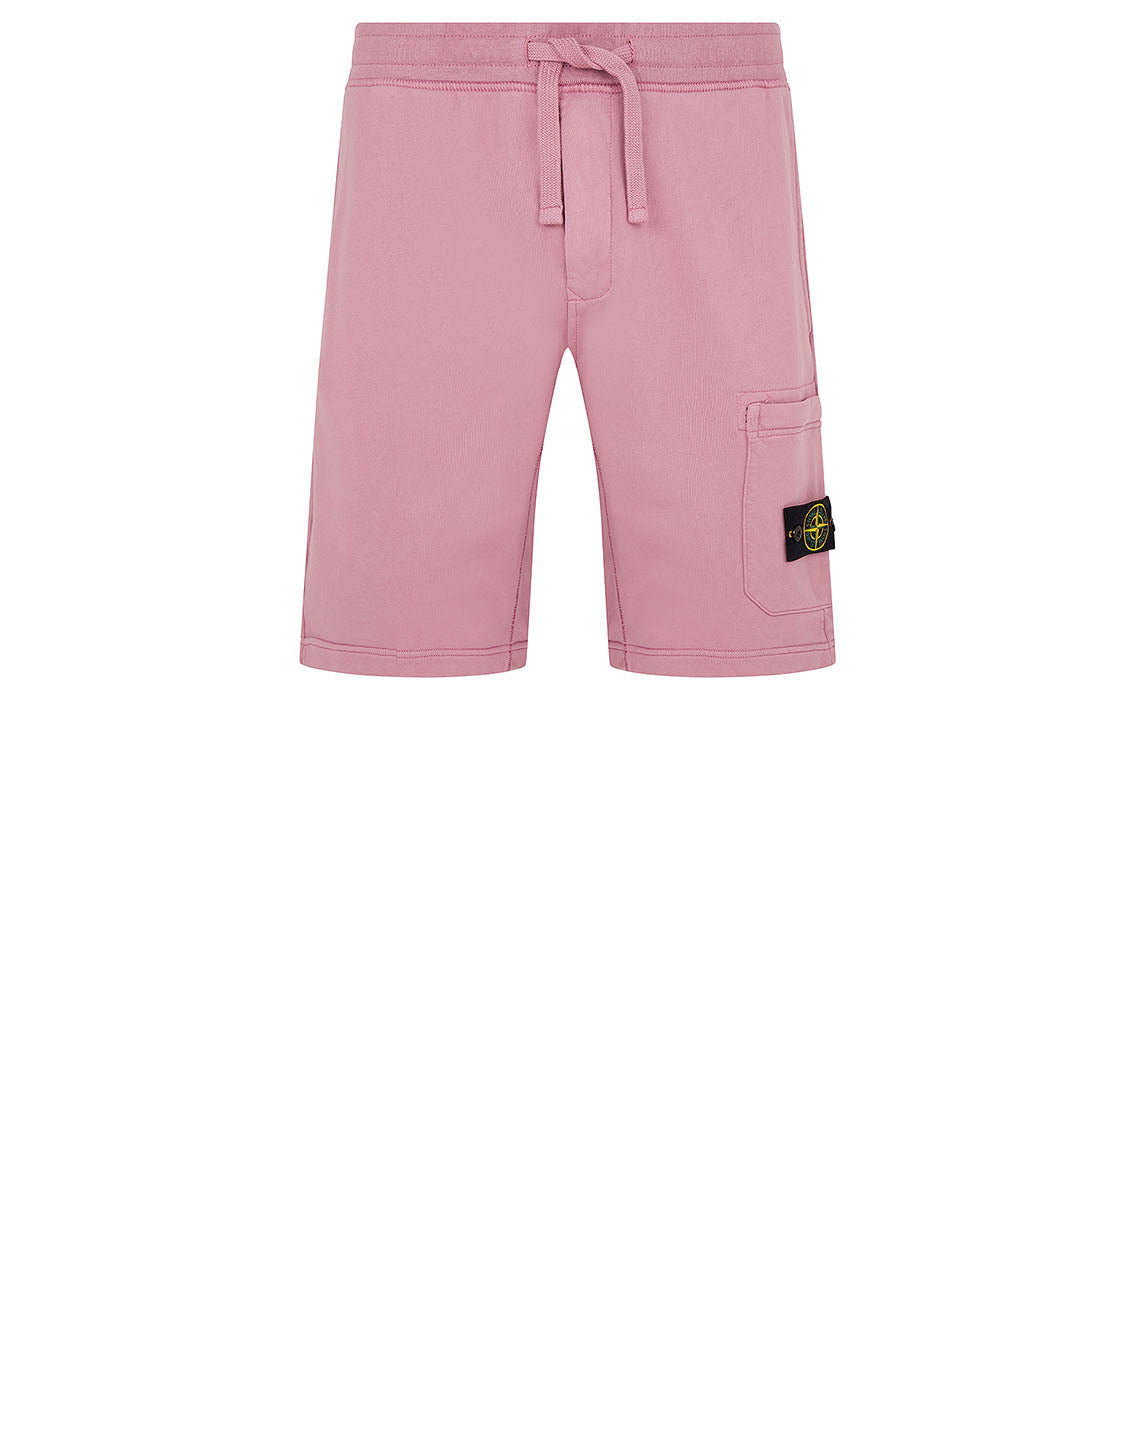 64651 Bermuda Shorts in Rose Quartz